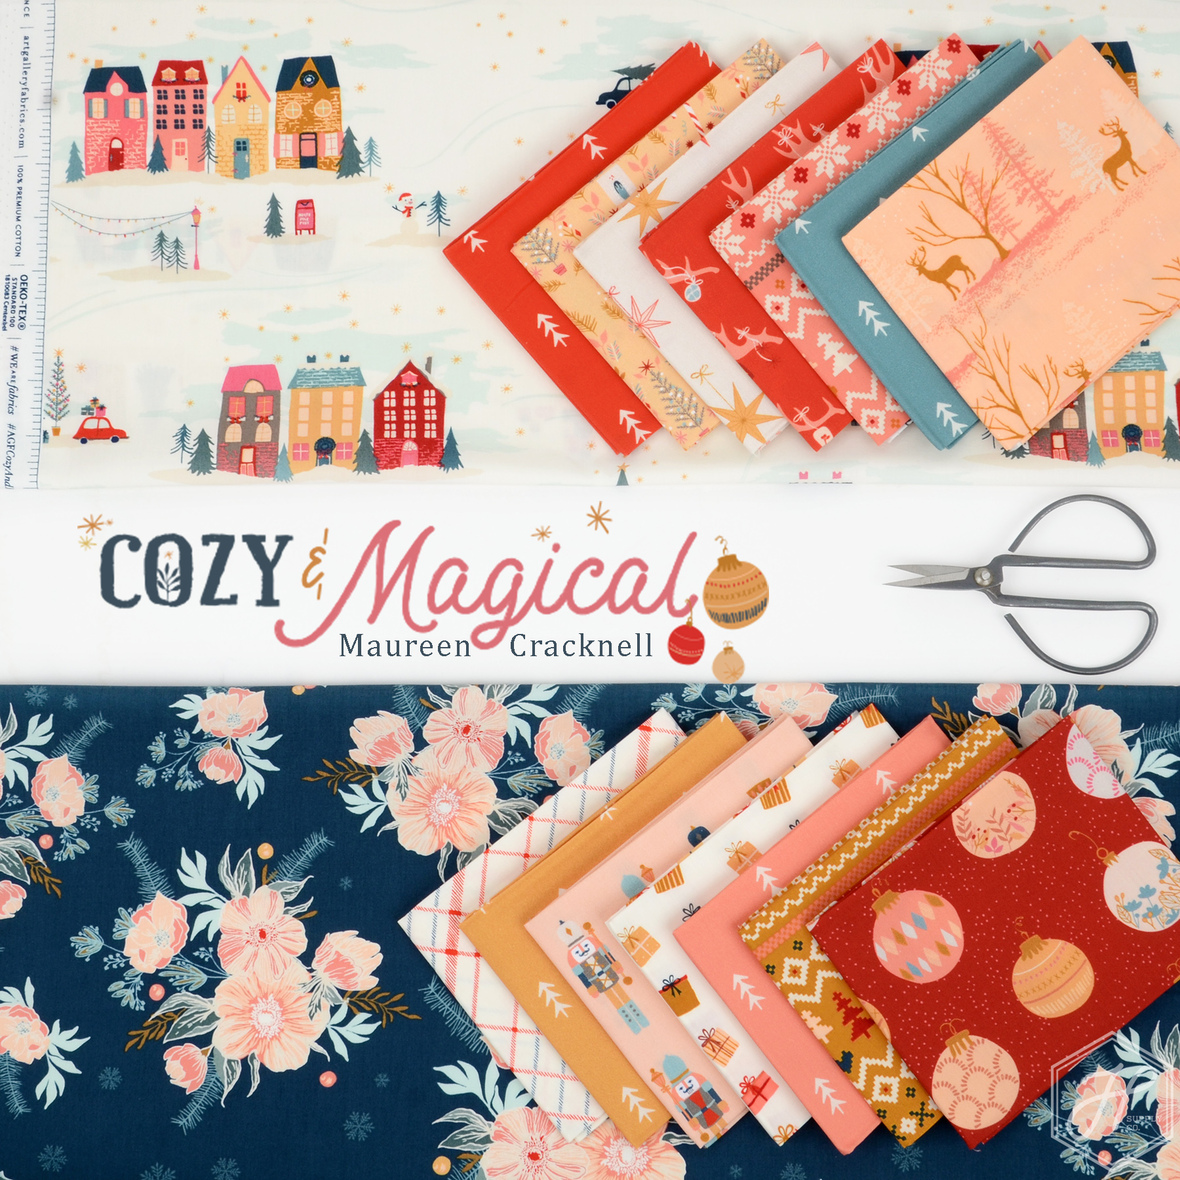 Cozy and Magical Maureen Cracknell for Art Gallery fabric at Hawthrone Supply Co